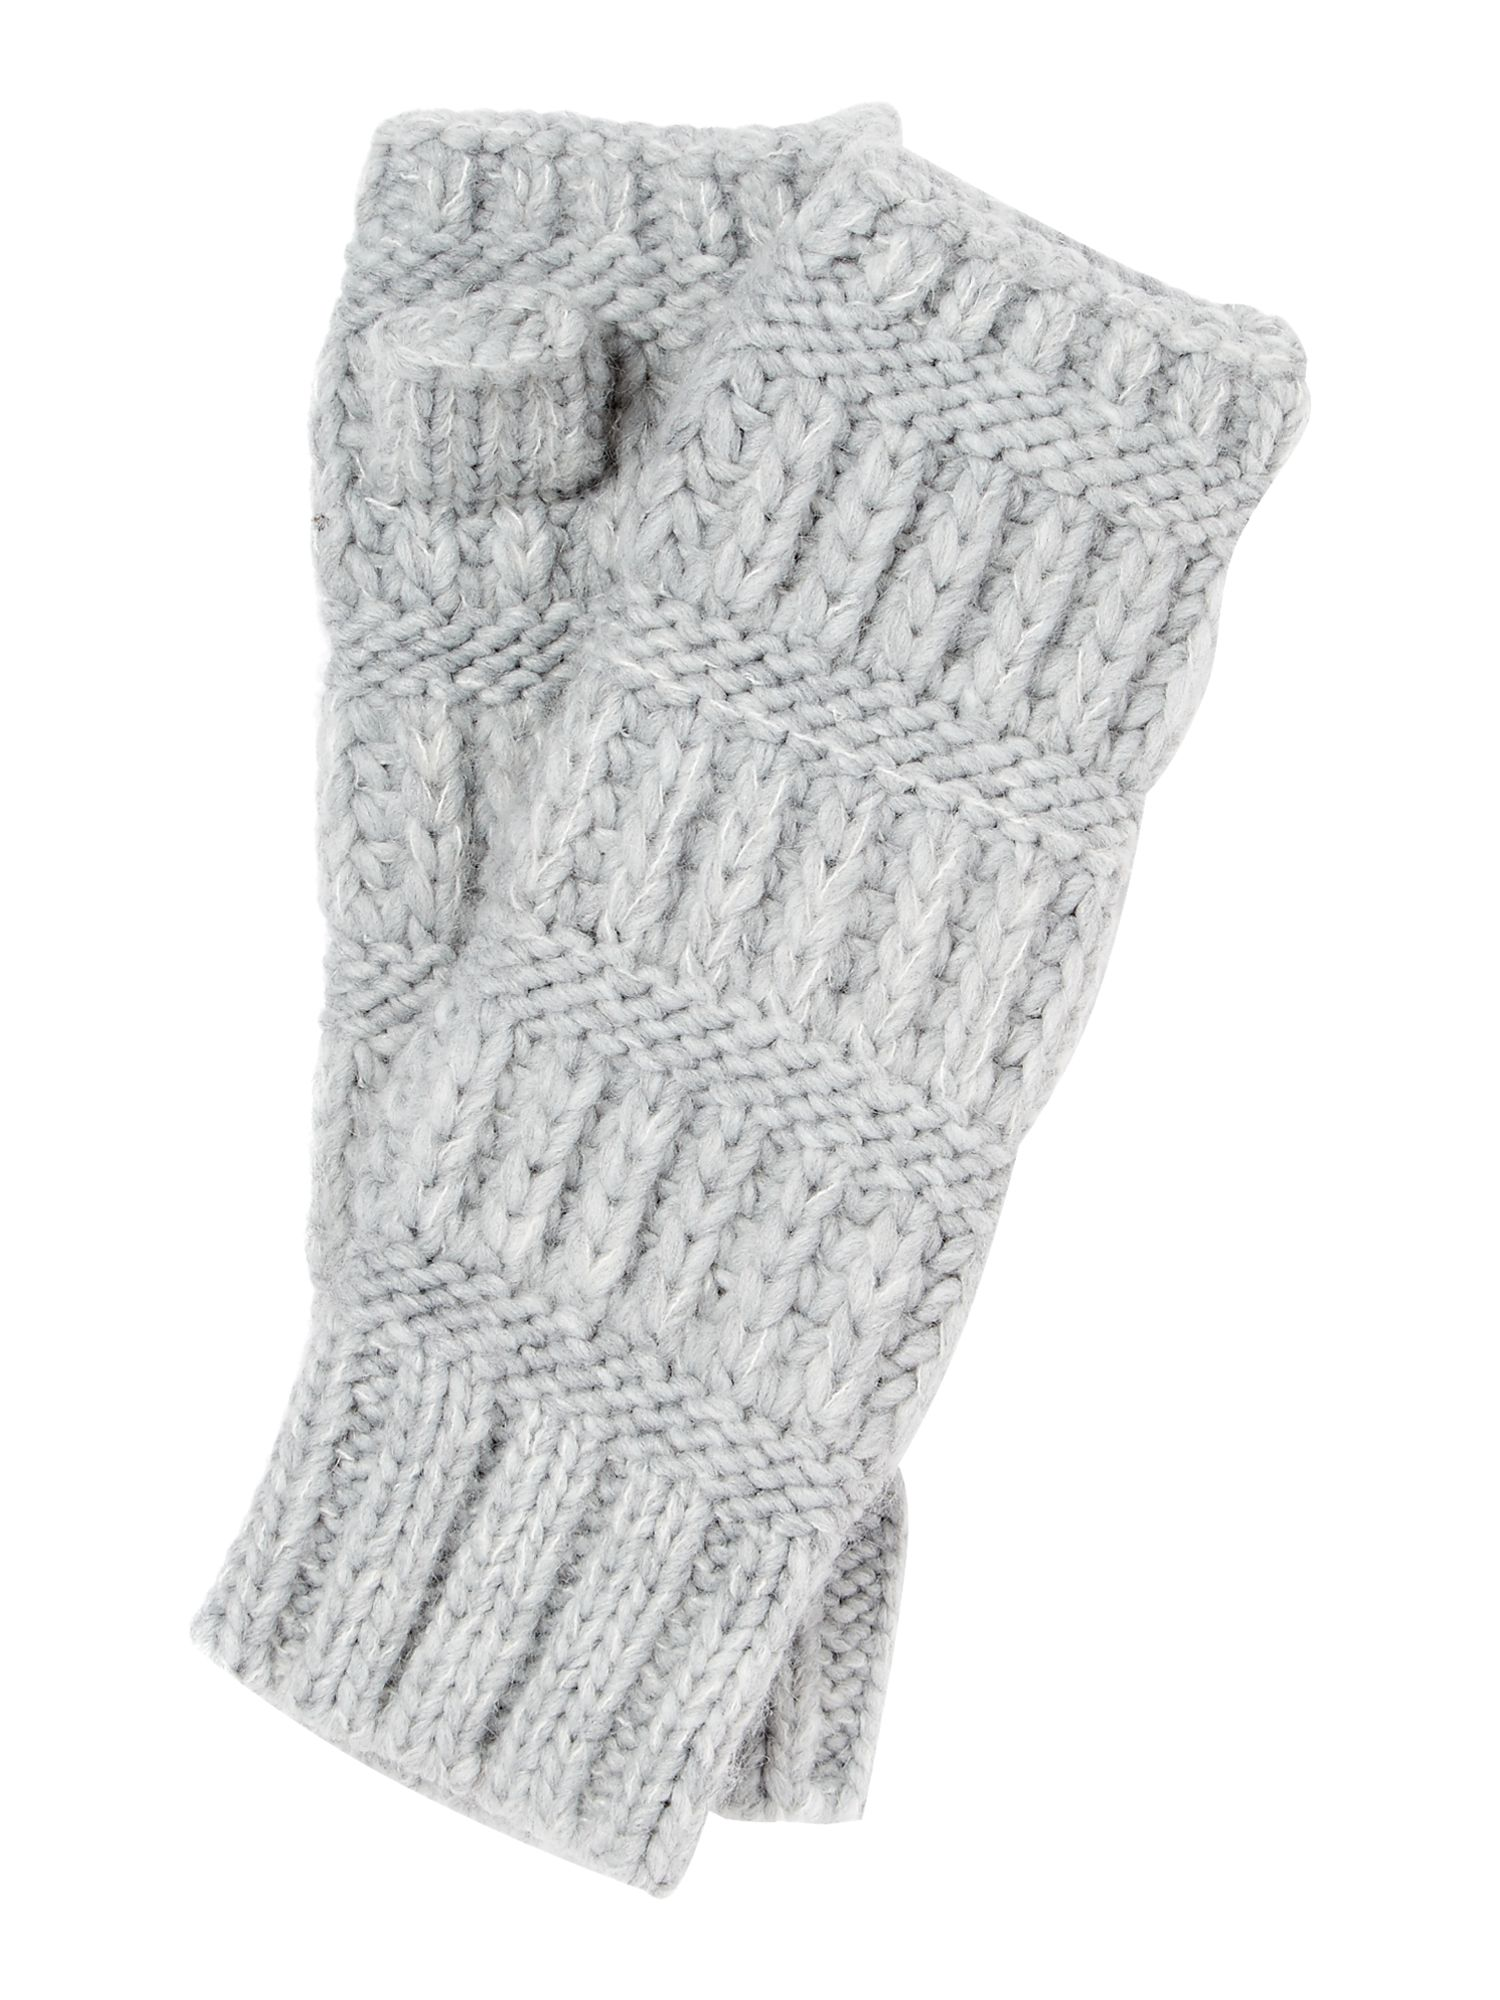 Gray & Willow Gray & Willow Mixed Knit Hand Warmers, Grey